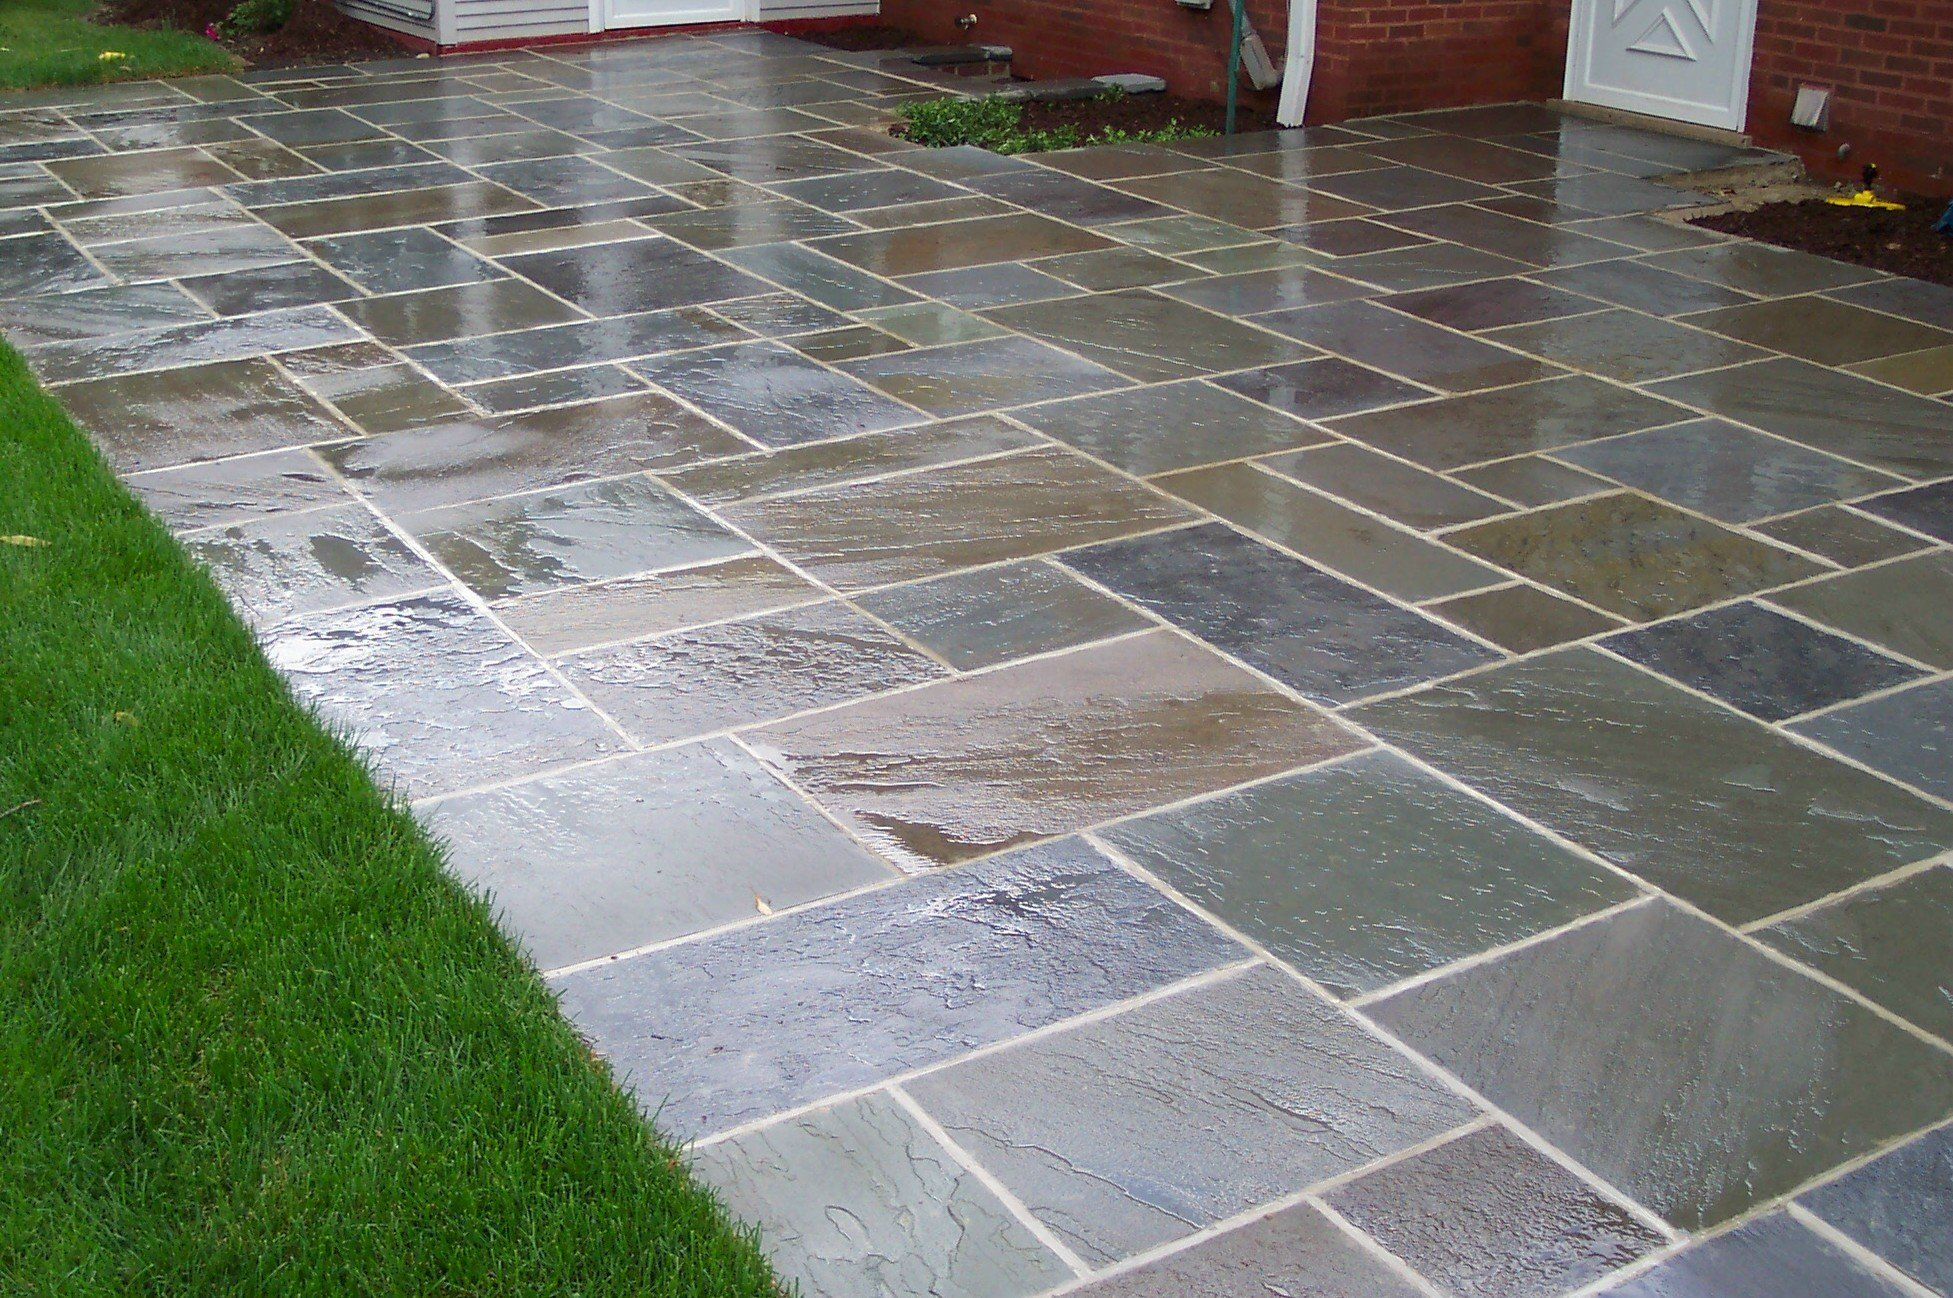 Charmant Grey Stone Floor Patio And Green Grass Yard Also White Wooden Wall .